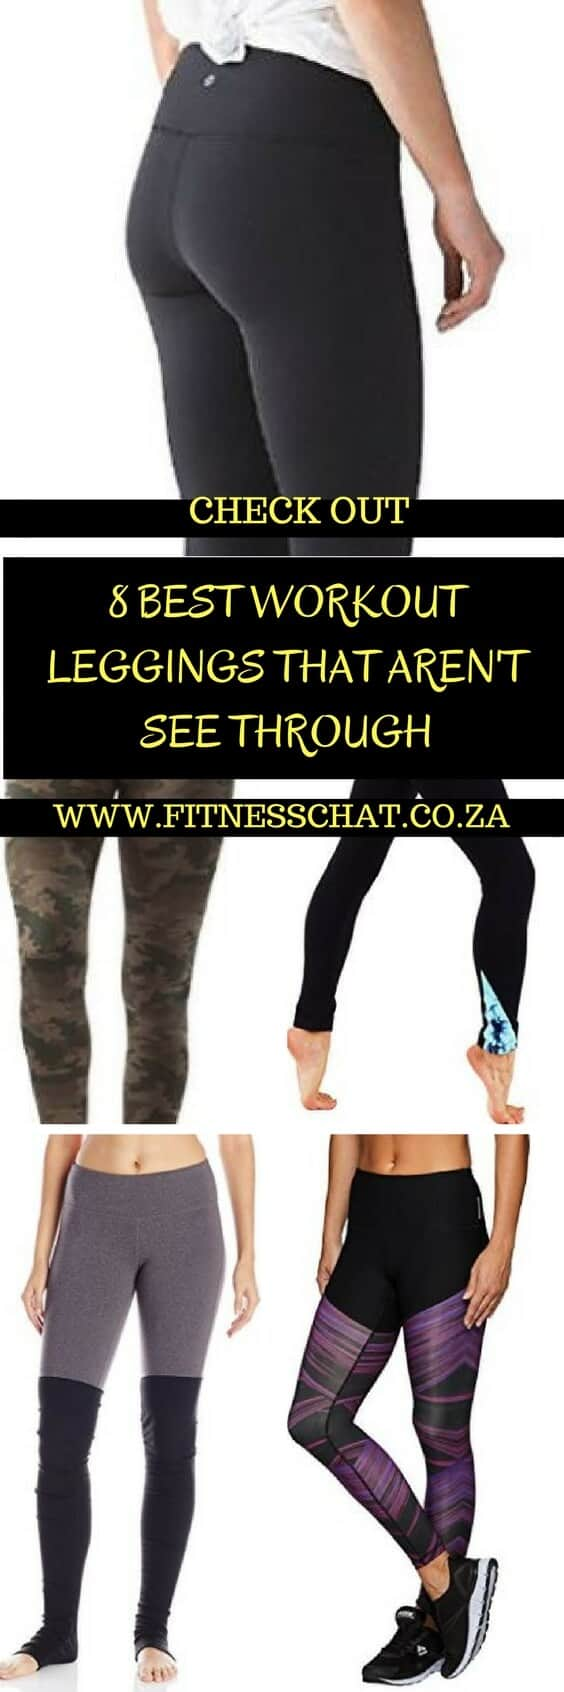 Yoga pants that are not see through | opaque yoga pants | NON transparent workout leggings | Squat proof pants | affordable leggings| best leggings for running | yoga leggings | leggings for work | best non see through workout leggings